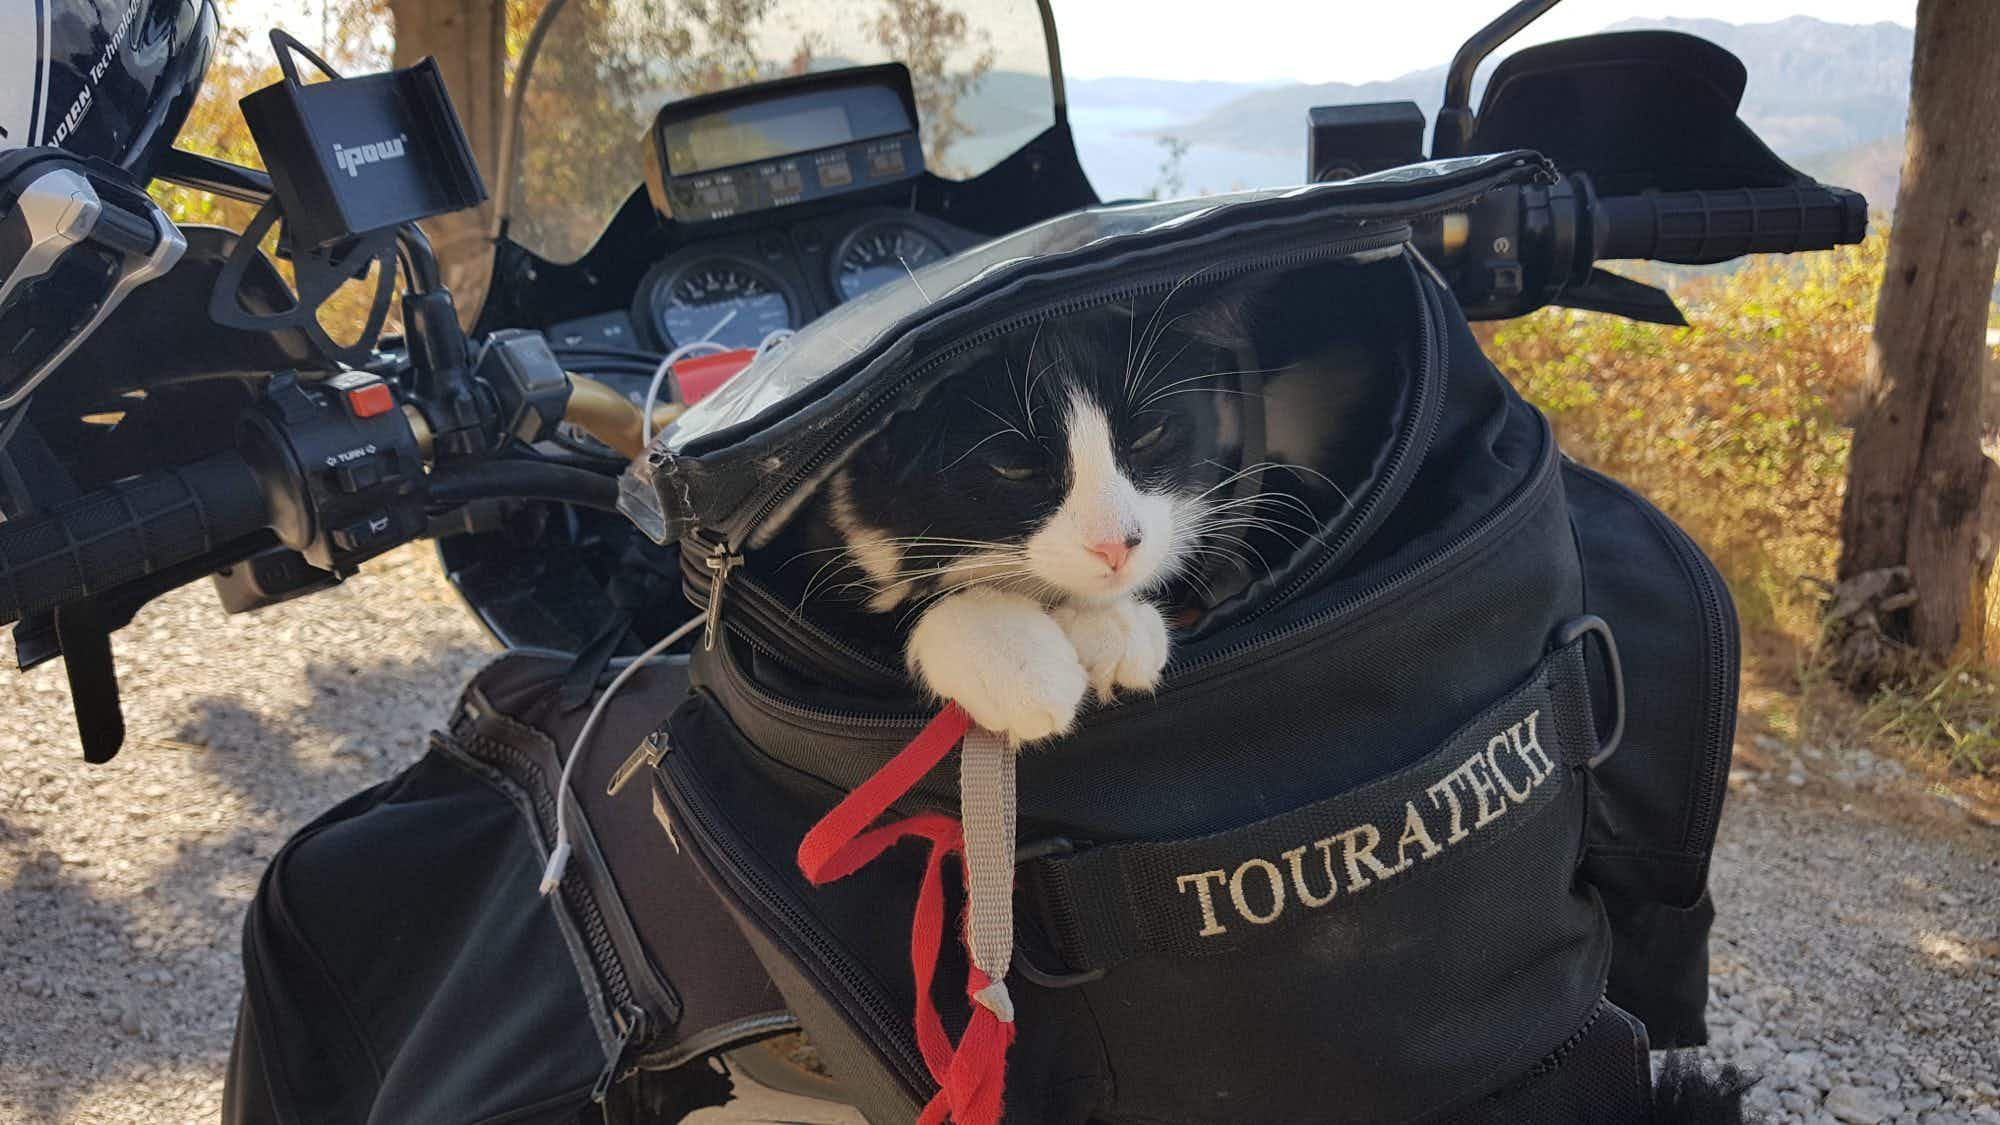 From Germany to Dubai on a motorbike - with a rescue cat on board